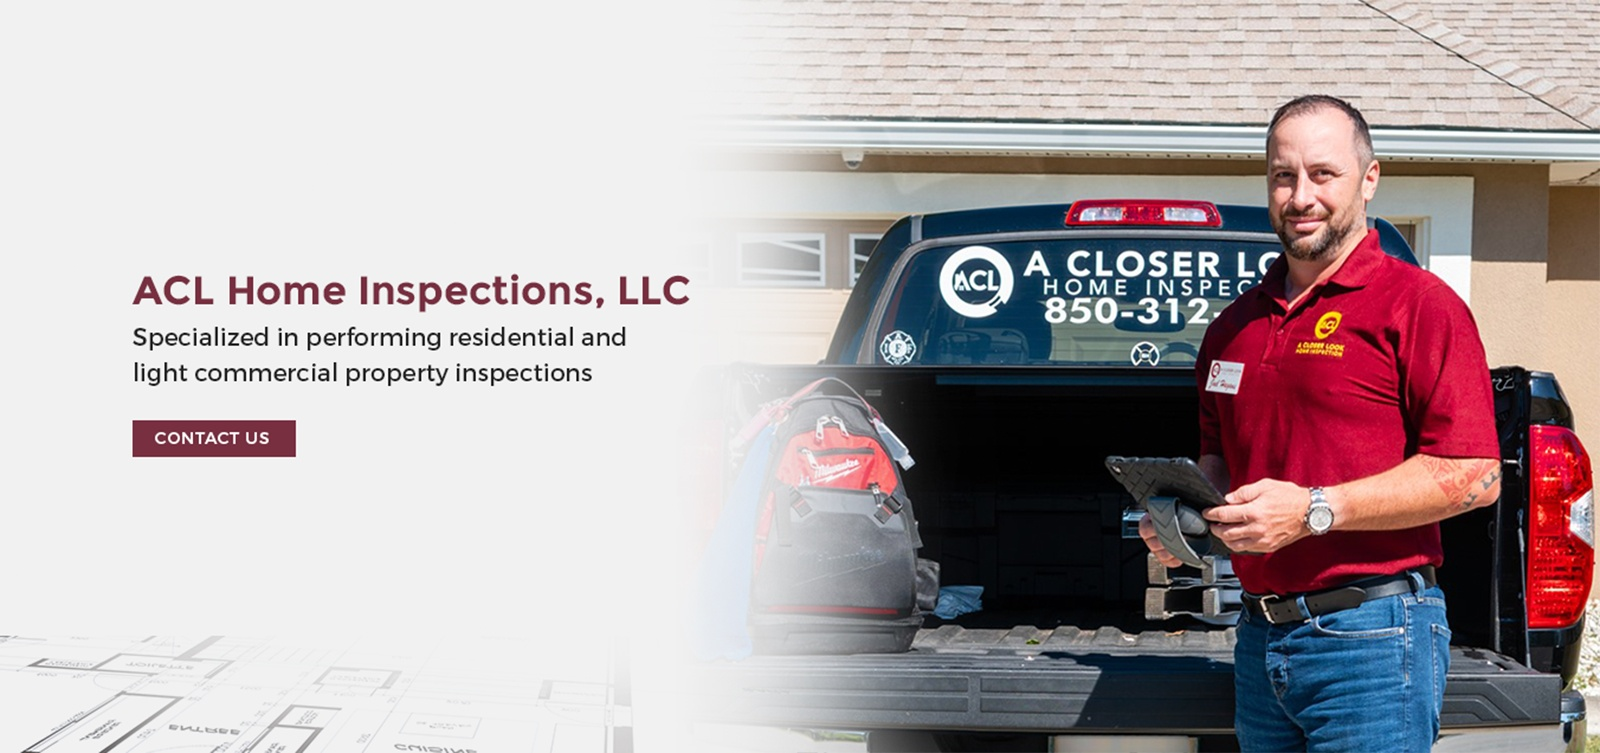 ACL Home Inspections LLC in Tallahassee FL